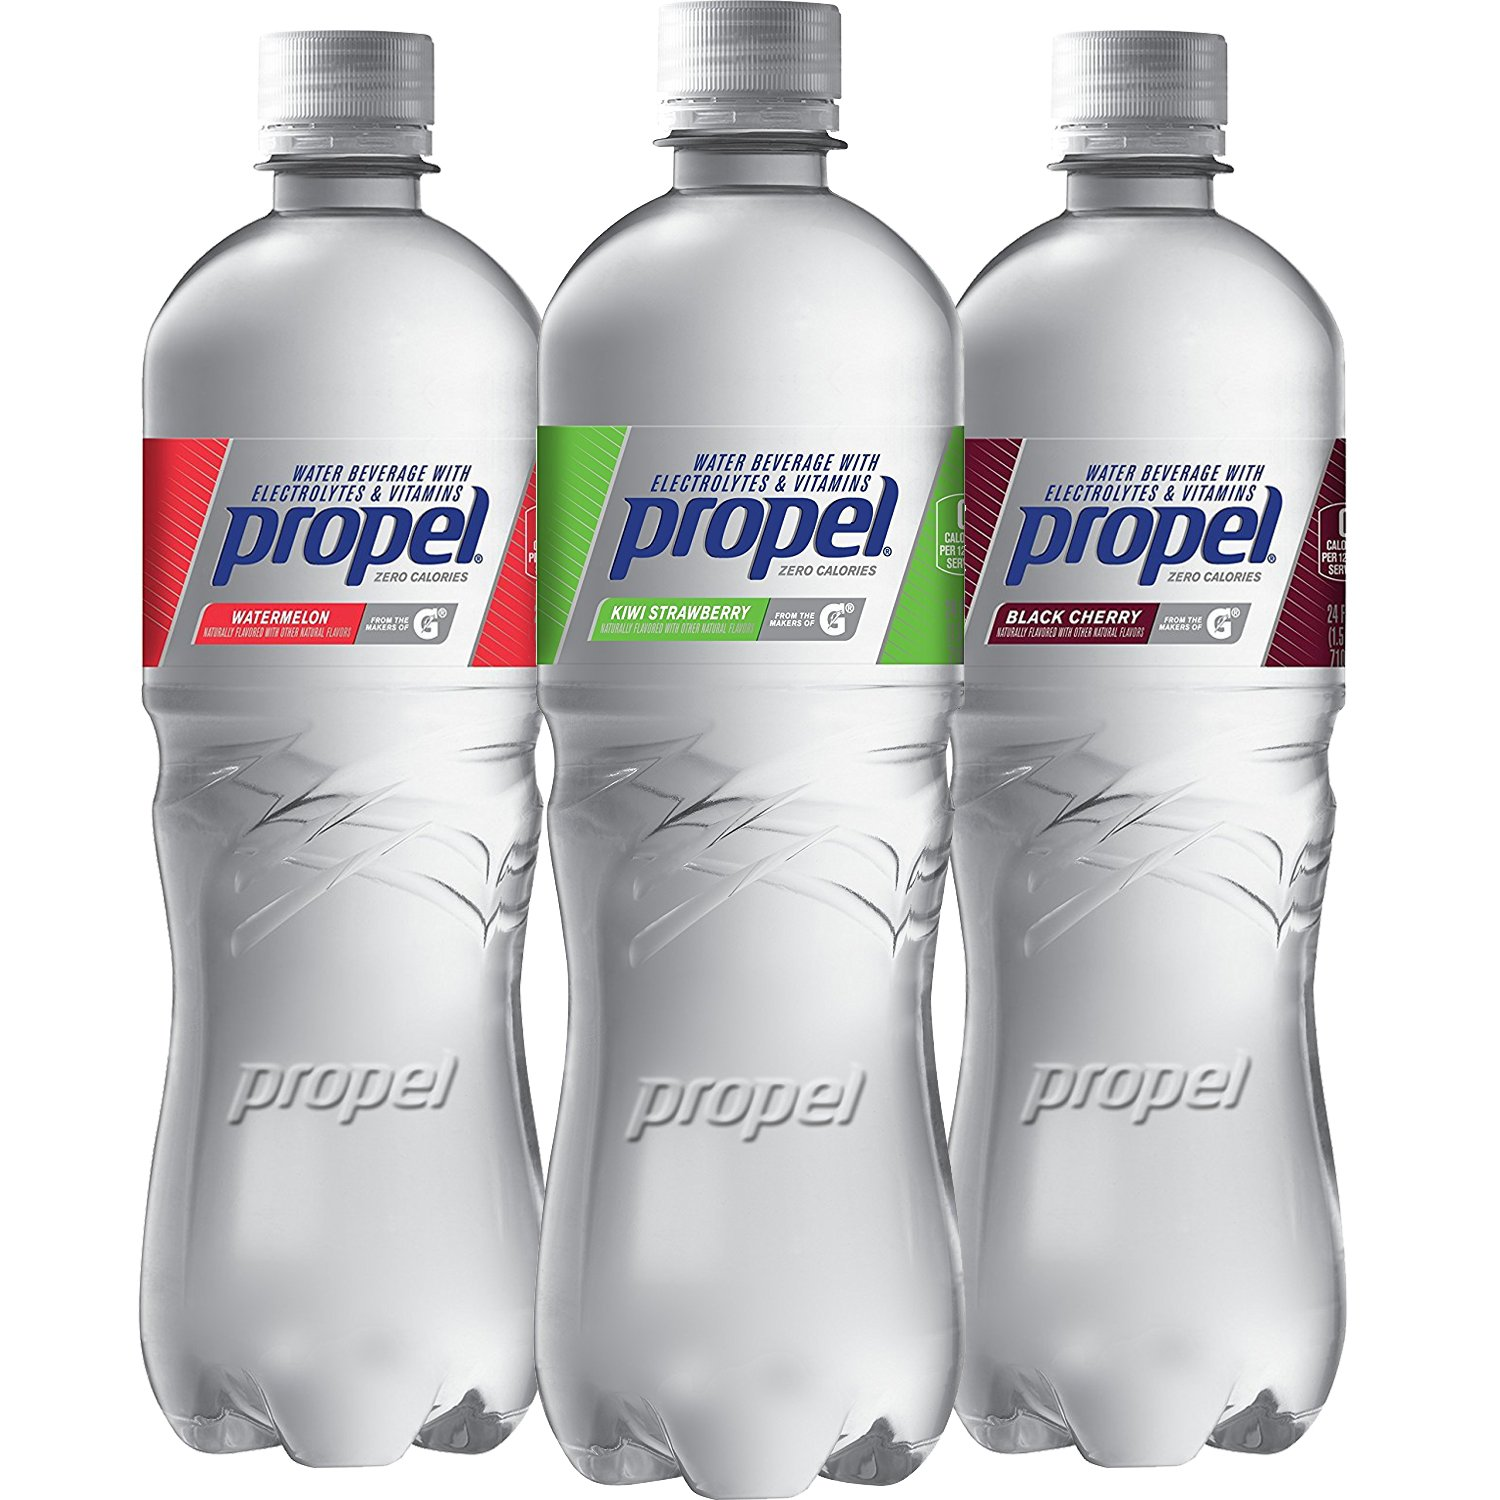 26f0b2292c Propel, 3 Flavor Variety Pack, Zero Calorie Water Beverage with ...